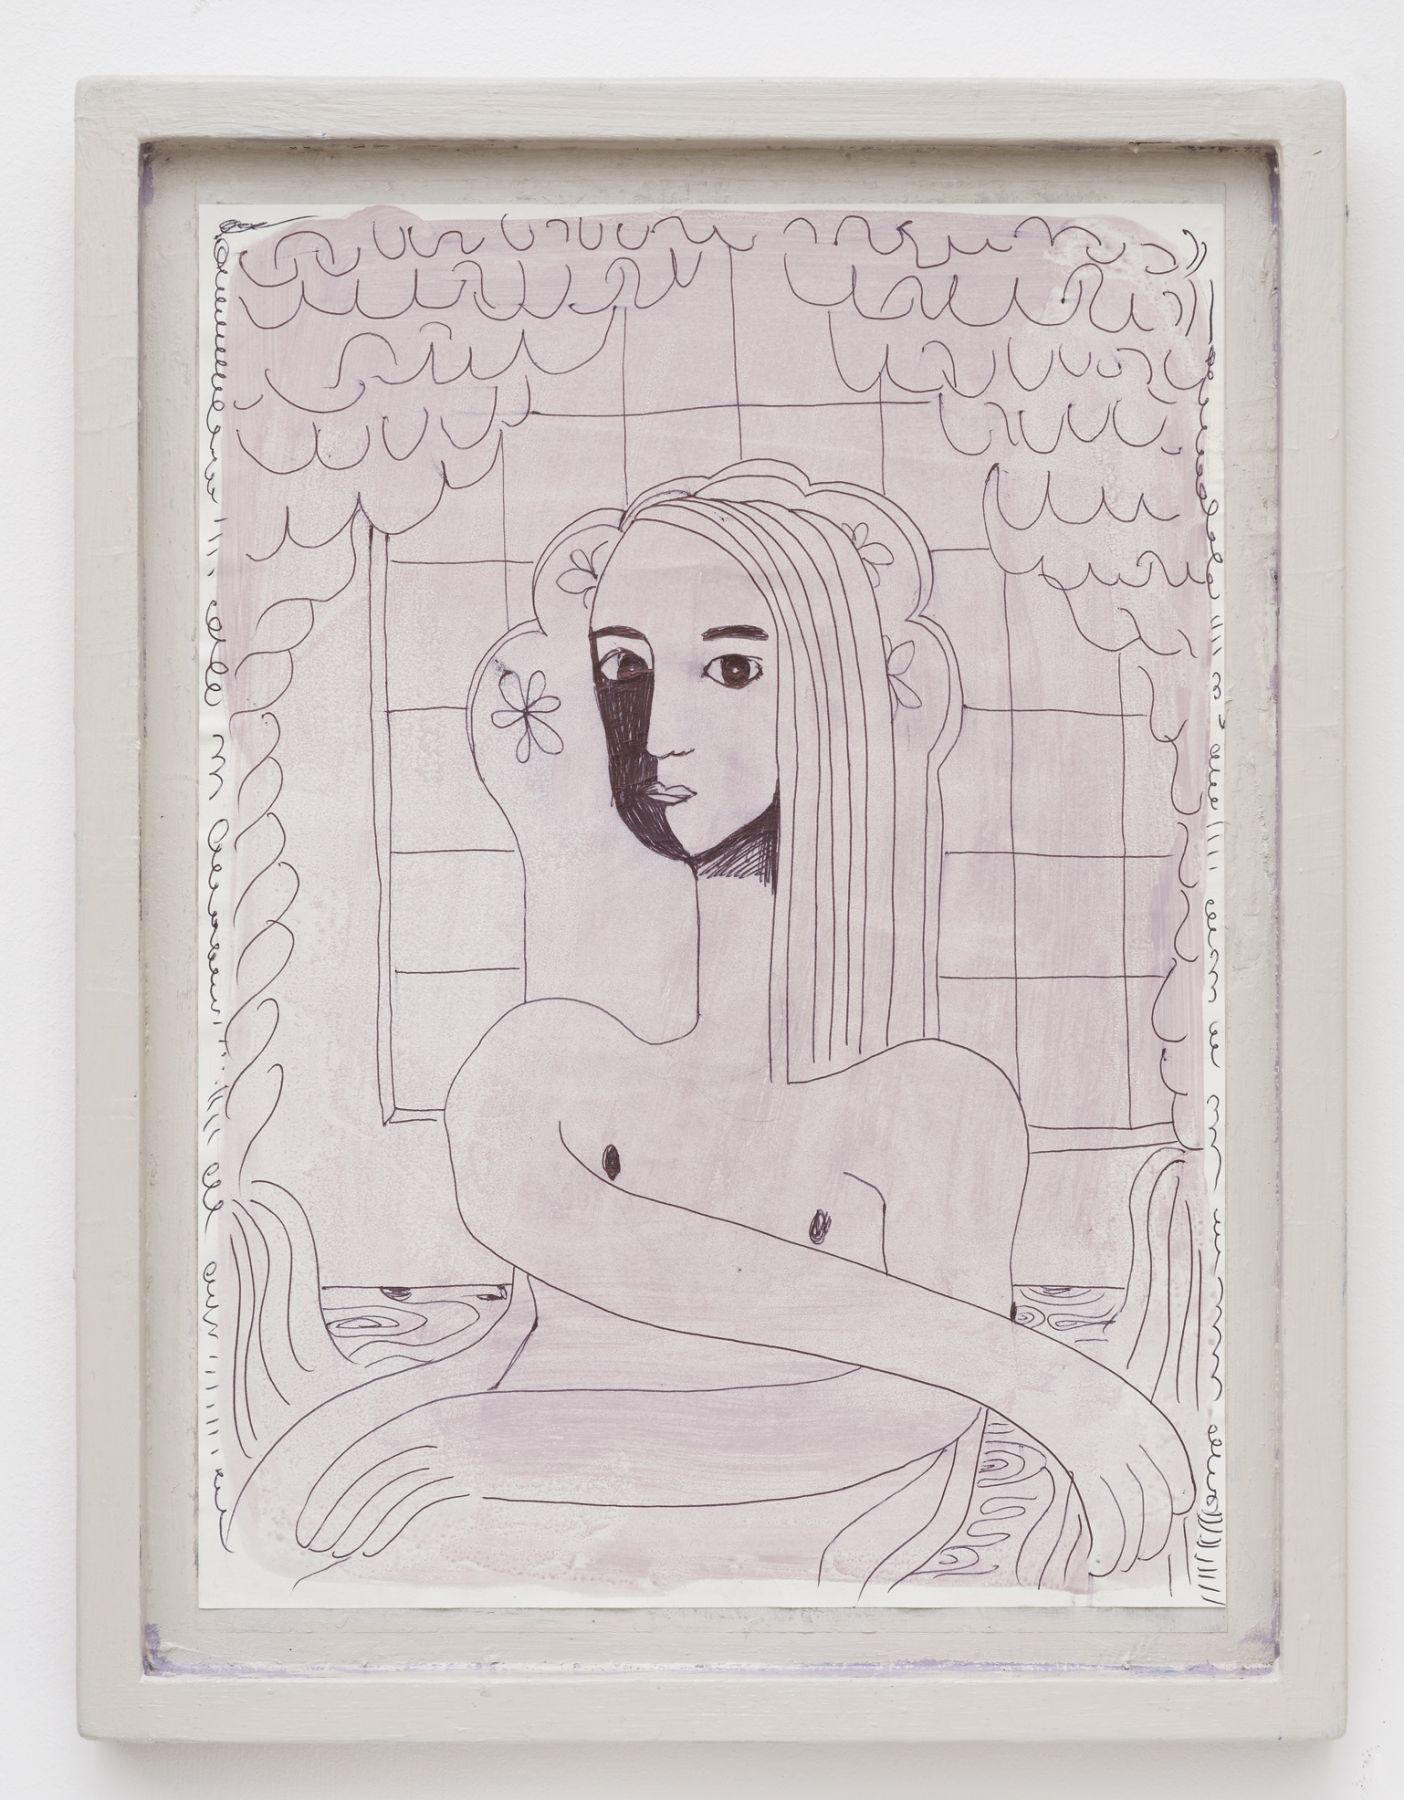 Nel Aerts Untitled, 2015-2016 Pen on paper, acrylic, artist made frame 48 x 36.5 cm (NA68)